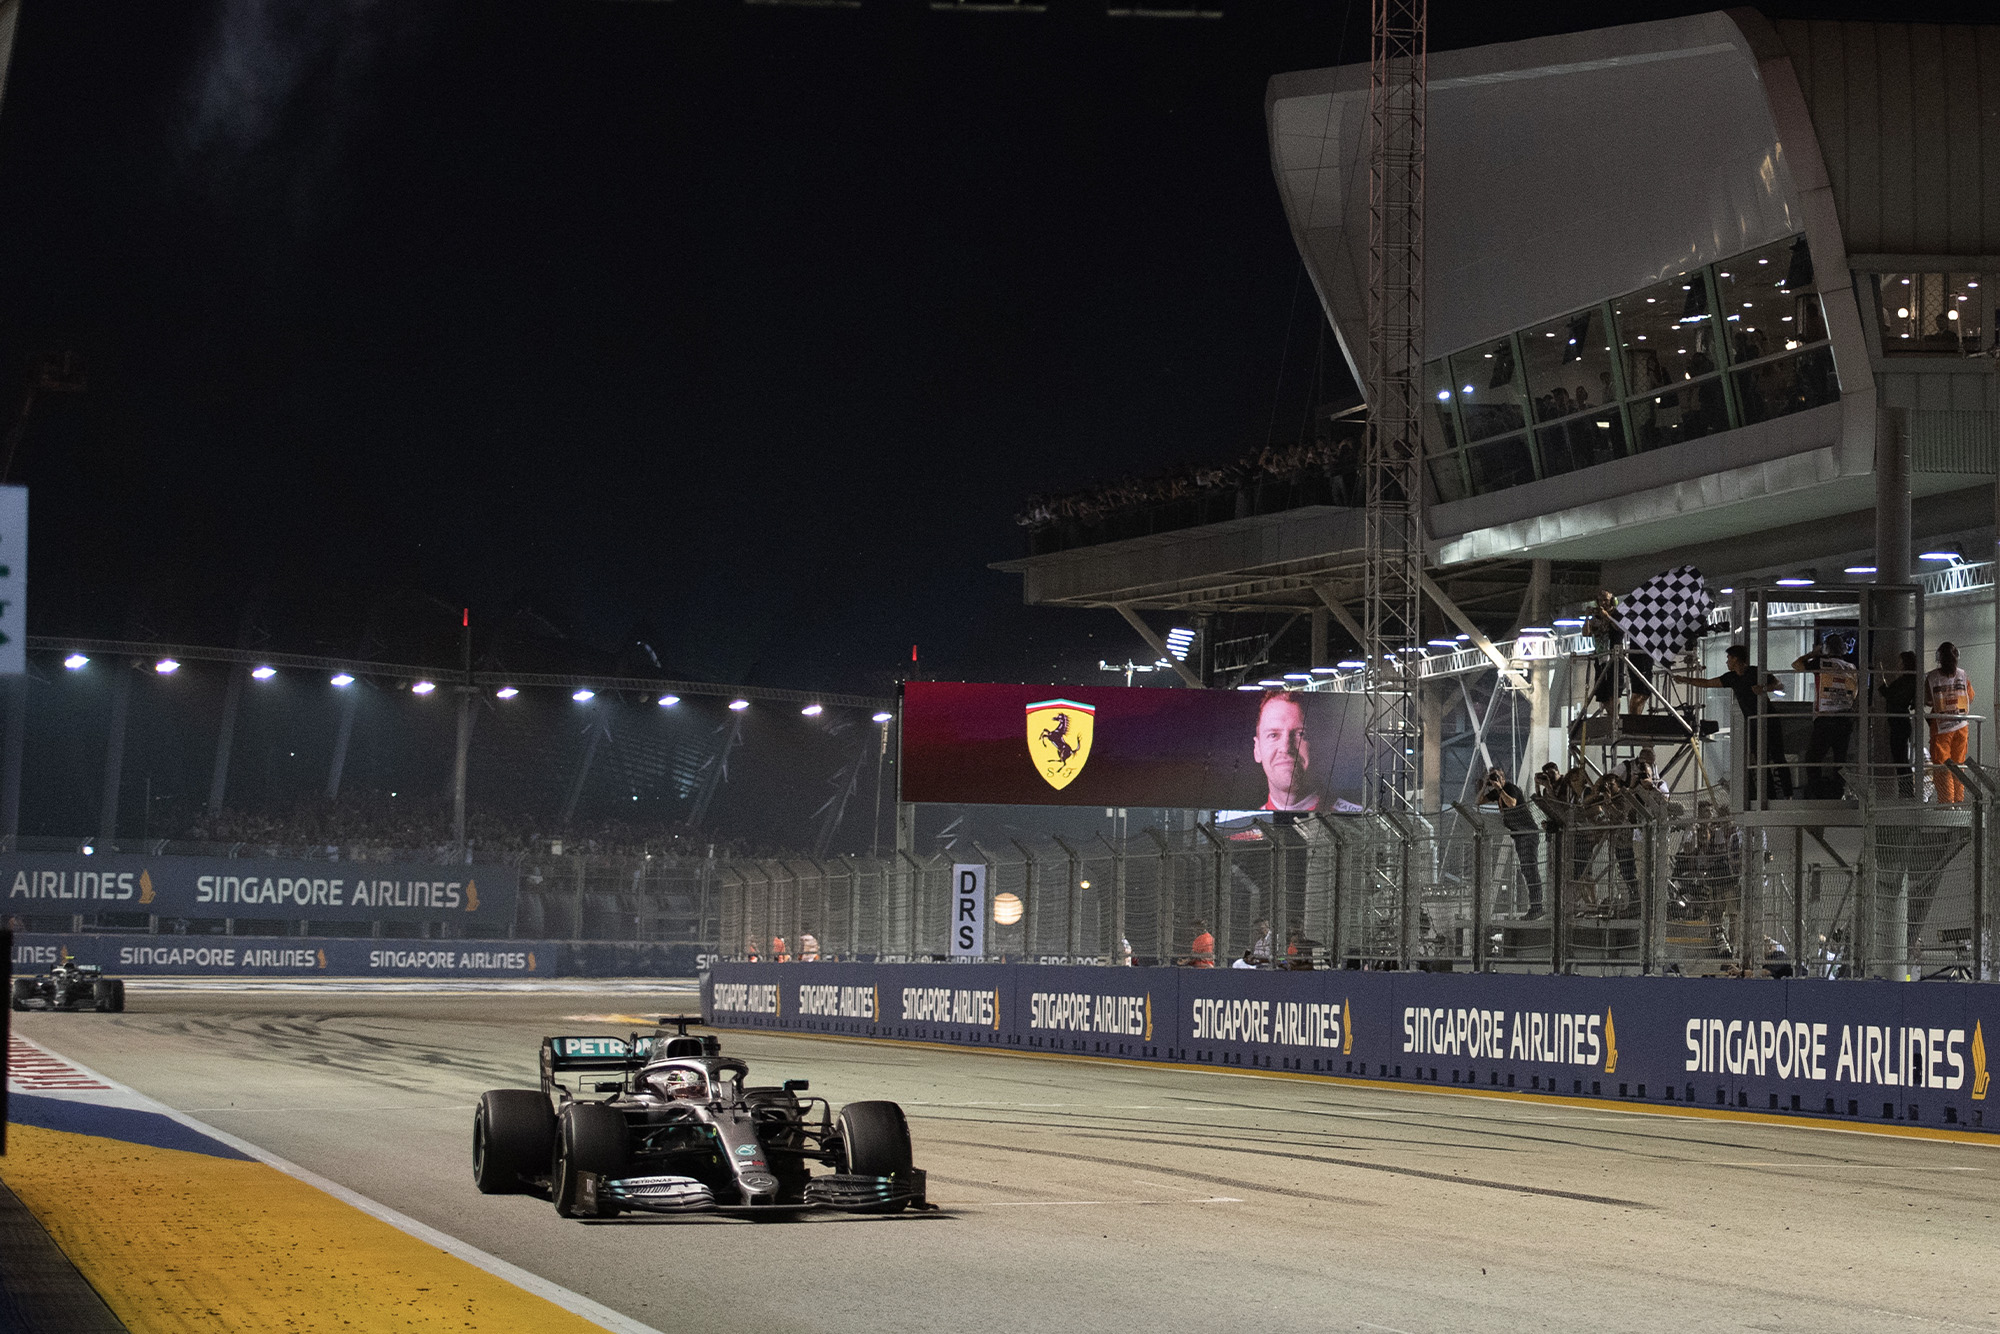 Lewis Hamilton crosses the line to finish the 2019 Singapore Grand Prix in fourth